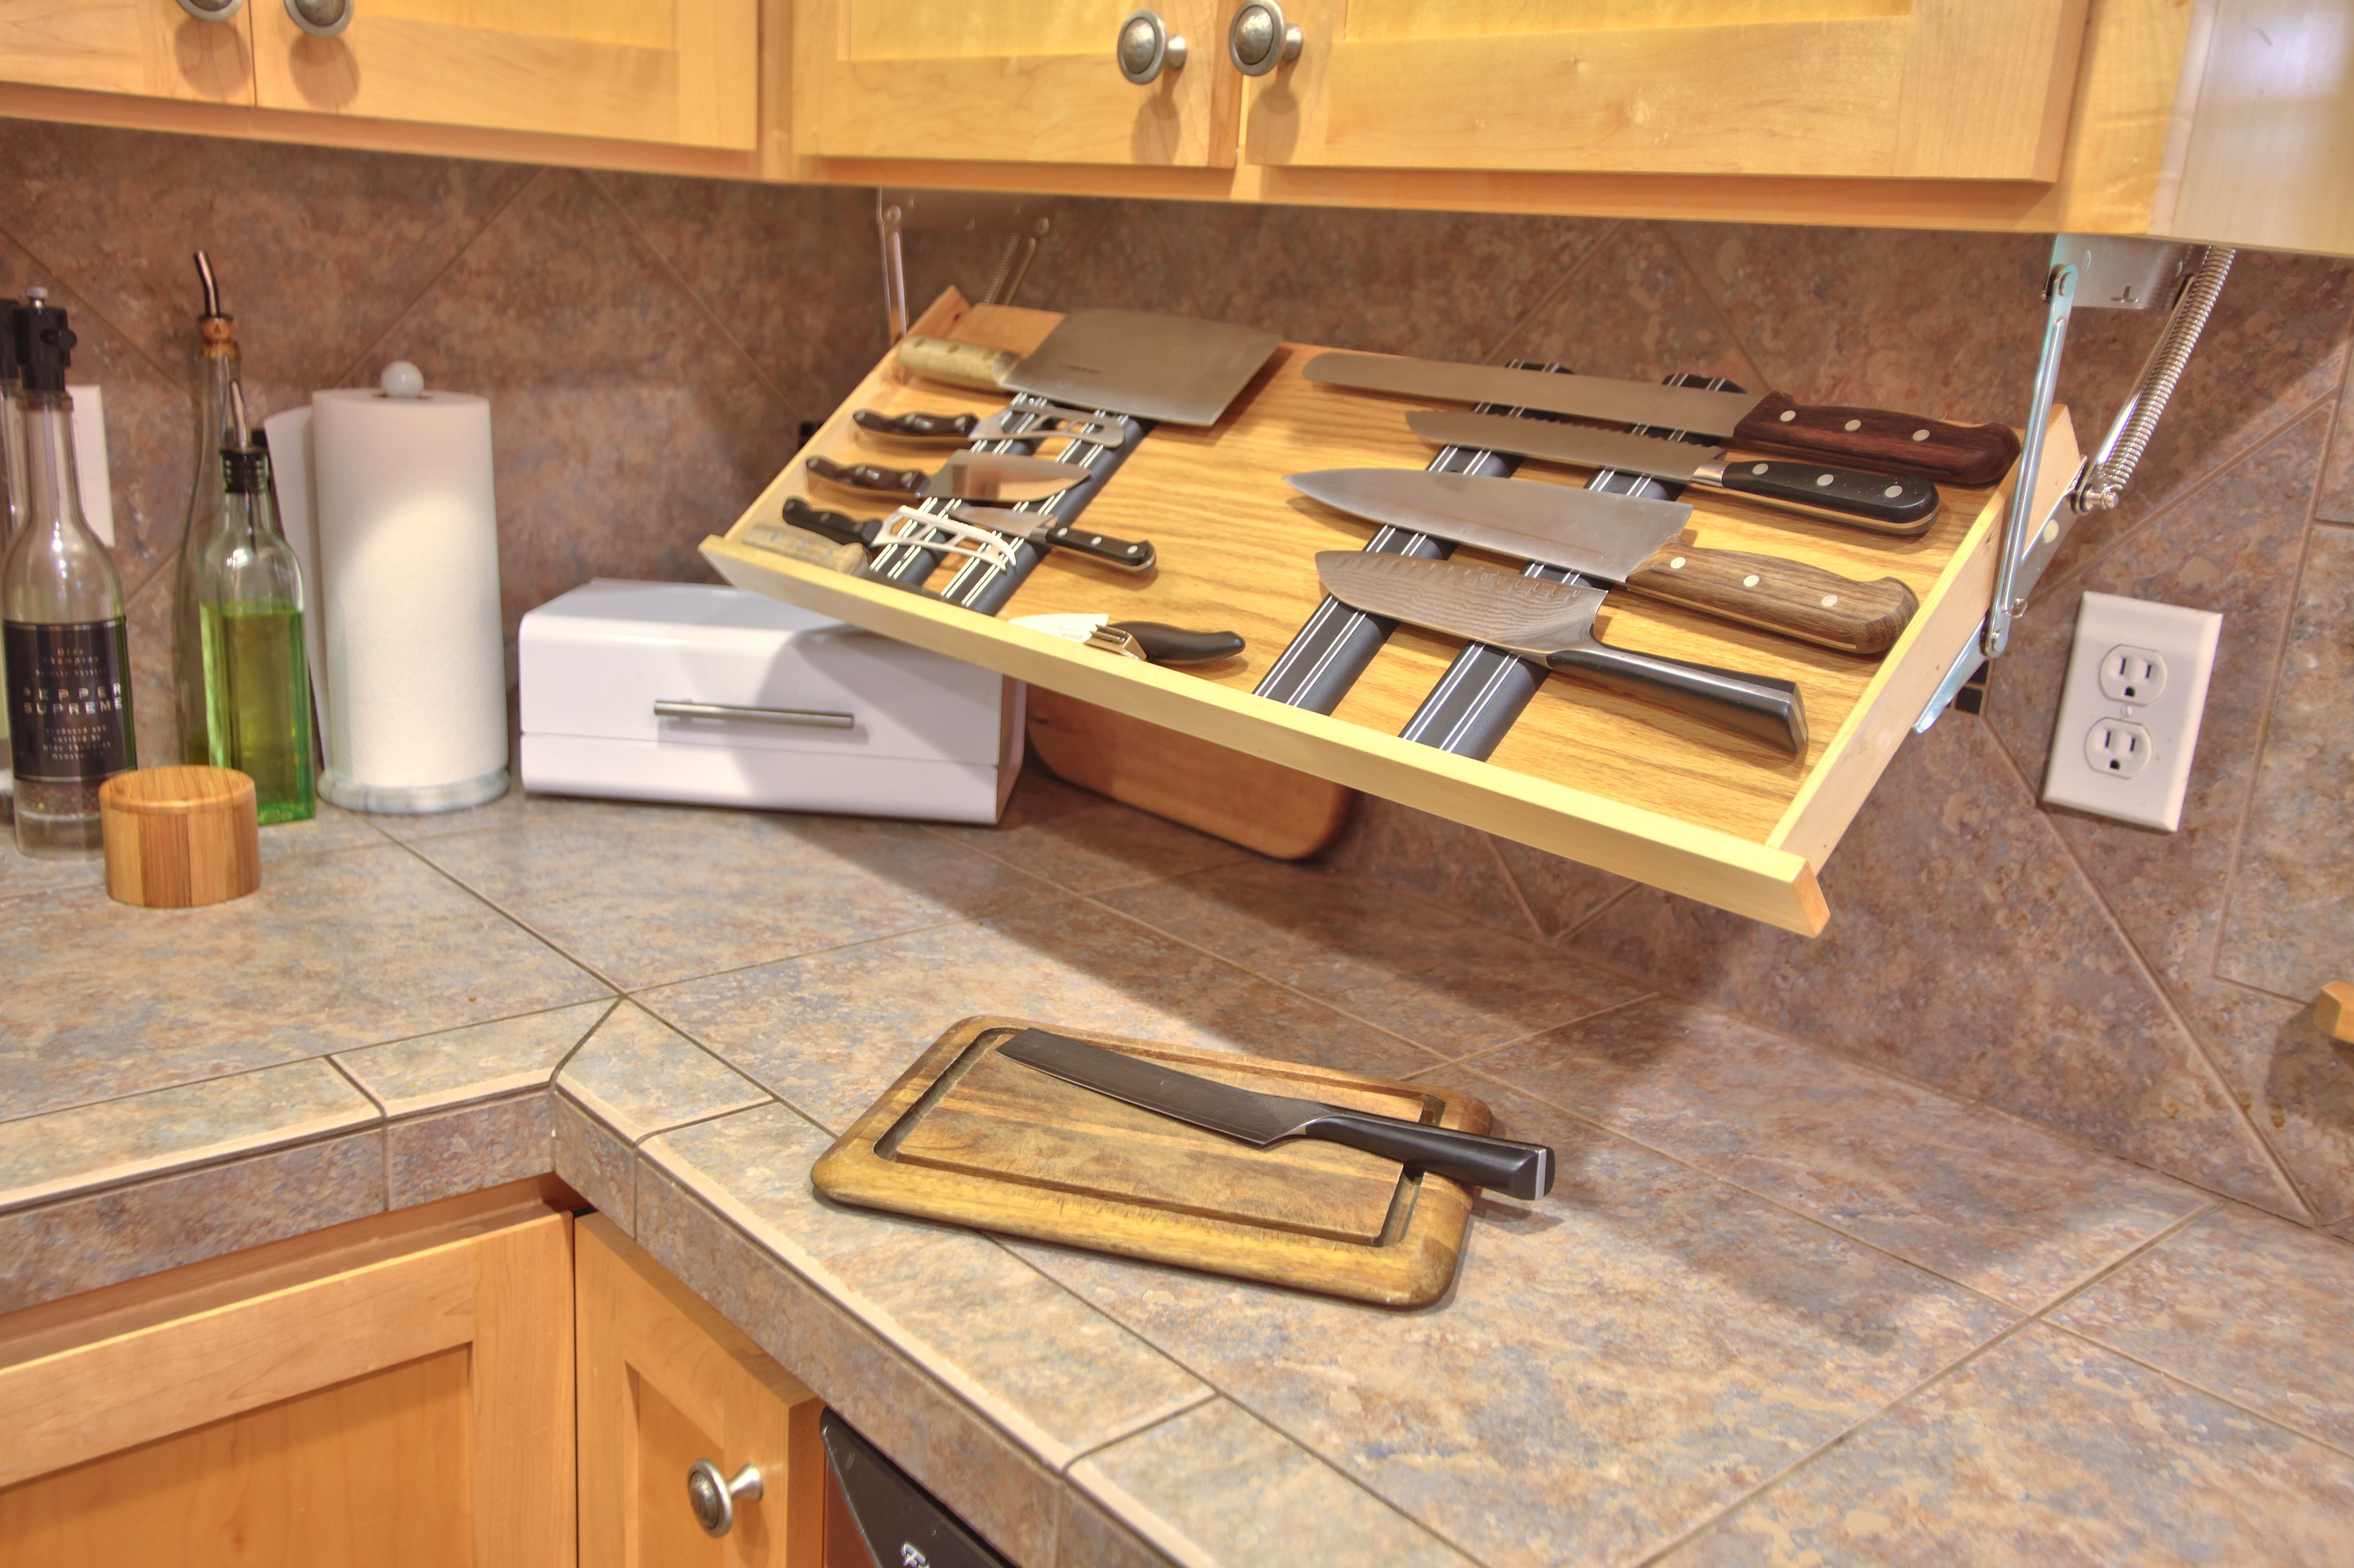 Get The Knife Out Under Counter Drop Down Knife Storage Clever